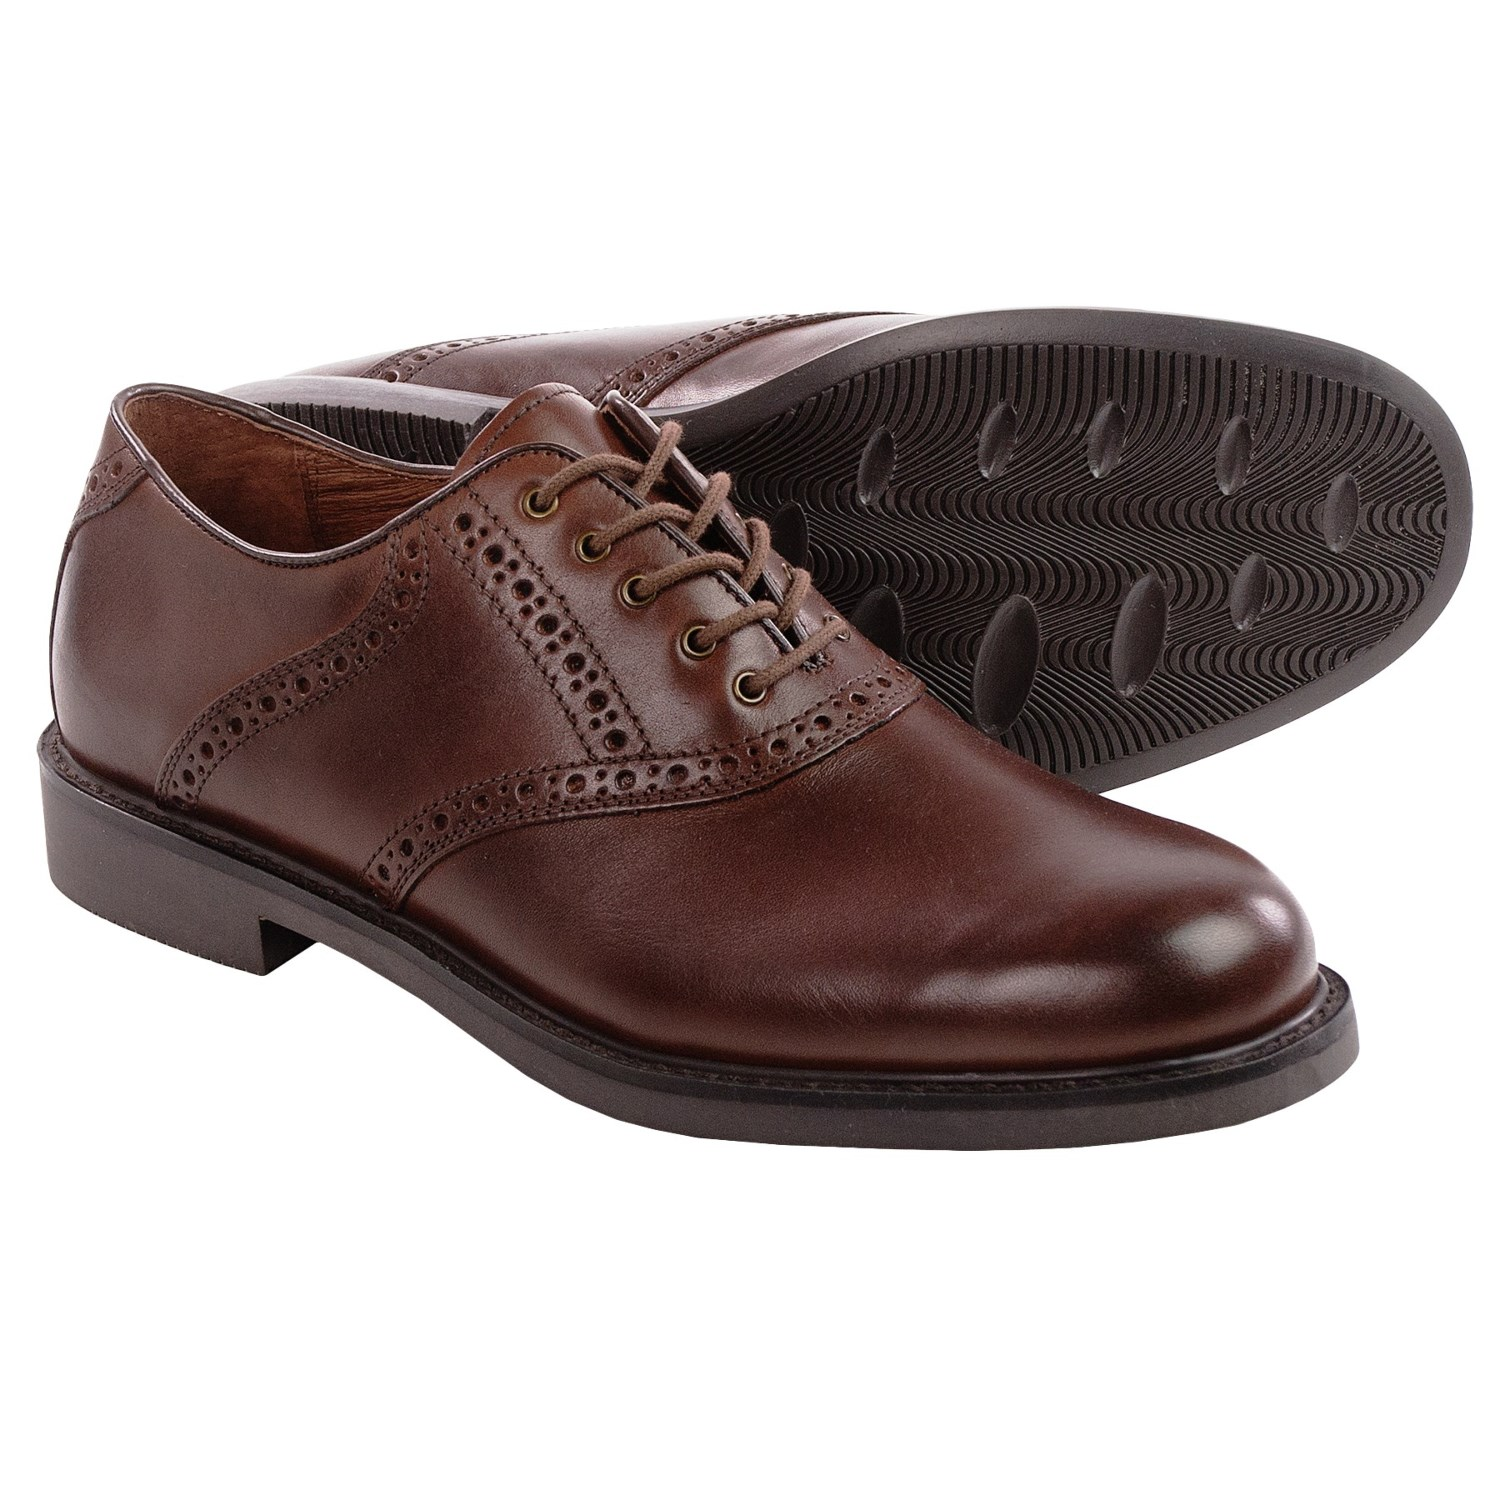 Mens Oxfords. If you're looking for a shoe that you can easily pair with any style ranging from a casual weekend to a formal event, look no further than a men's Oxfords. Excellent Wear to Work Shoe For a classic shoe that pairs well with everything from dress pants to khakis, consider a men's Oxfords shoe by designers such as Johnston & Murphy.